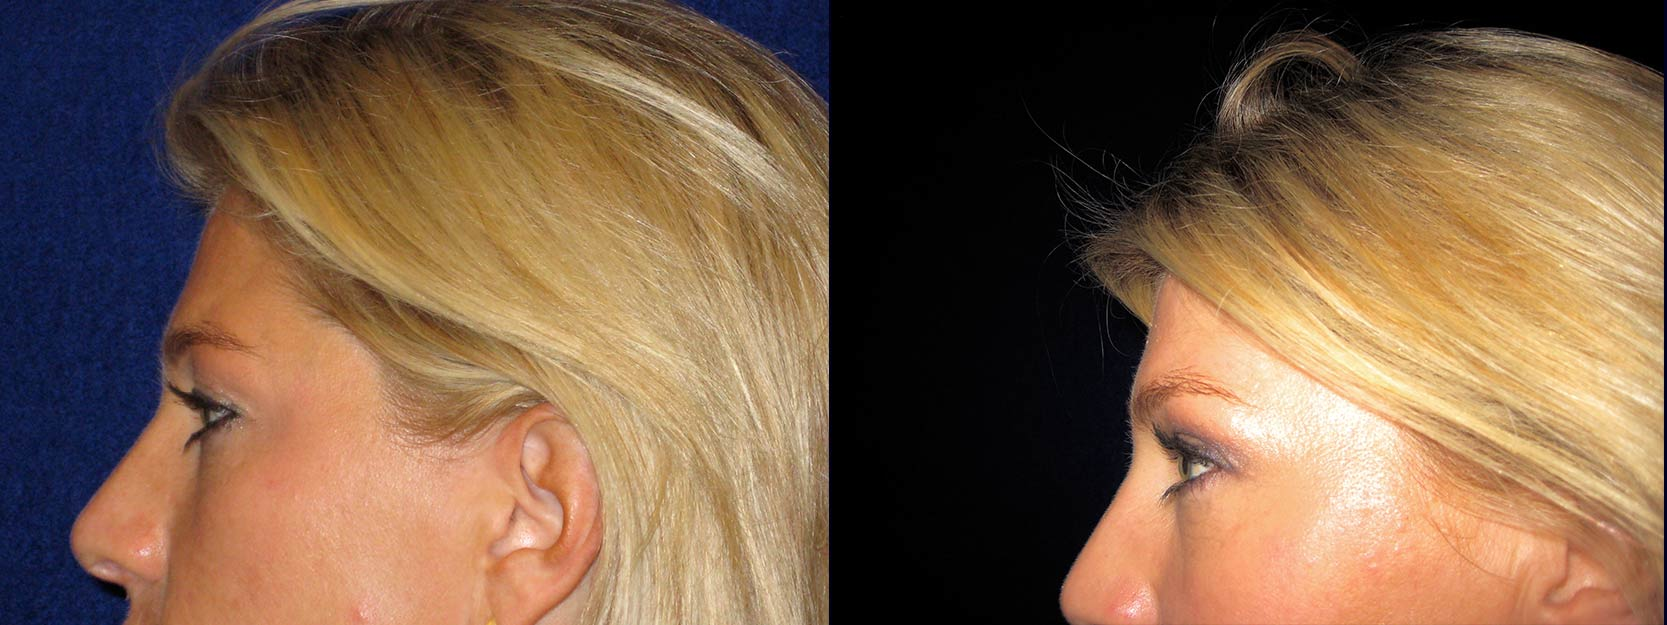 Left Profile View - Upper Eyelid Surgery